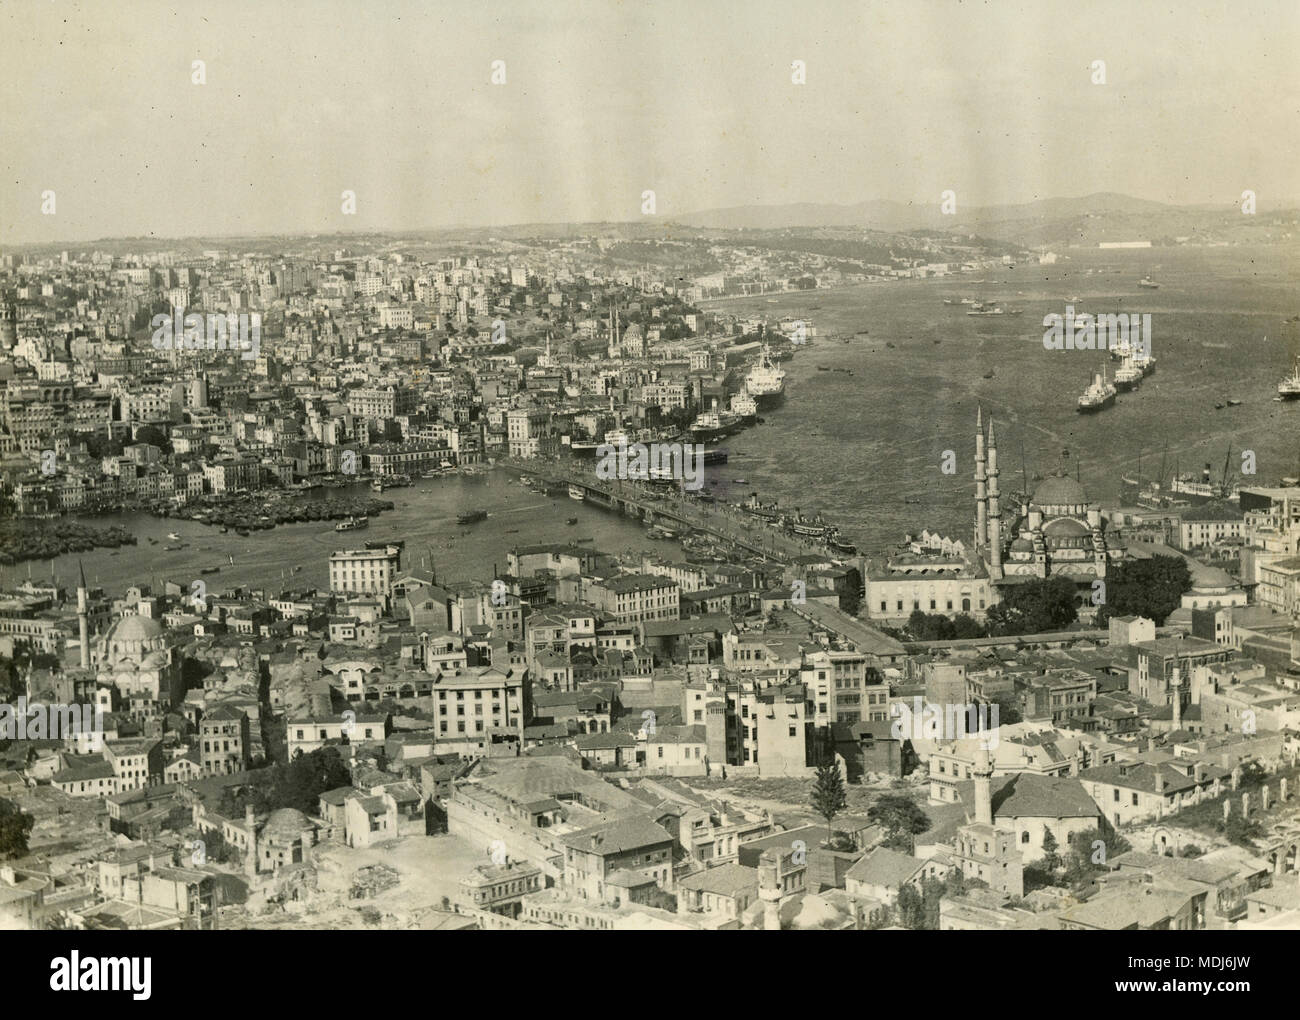 View of Istanbul, Turkey 1930 - Stock Image